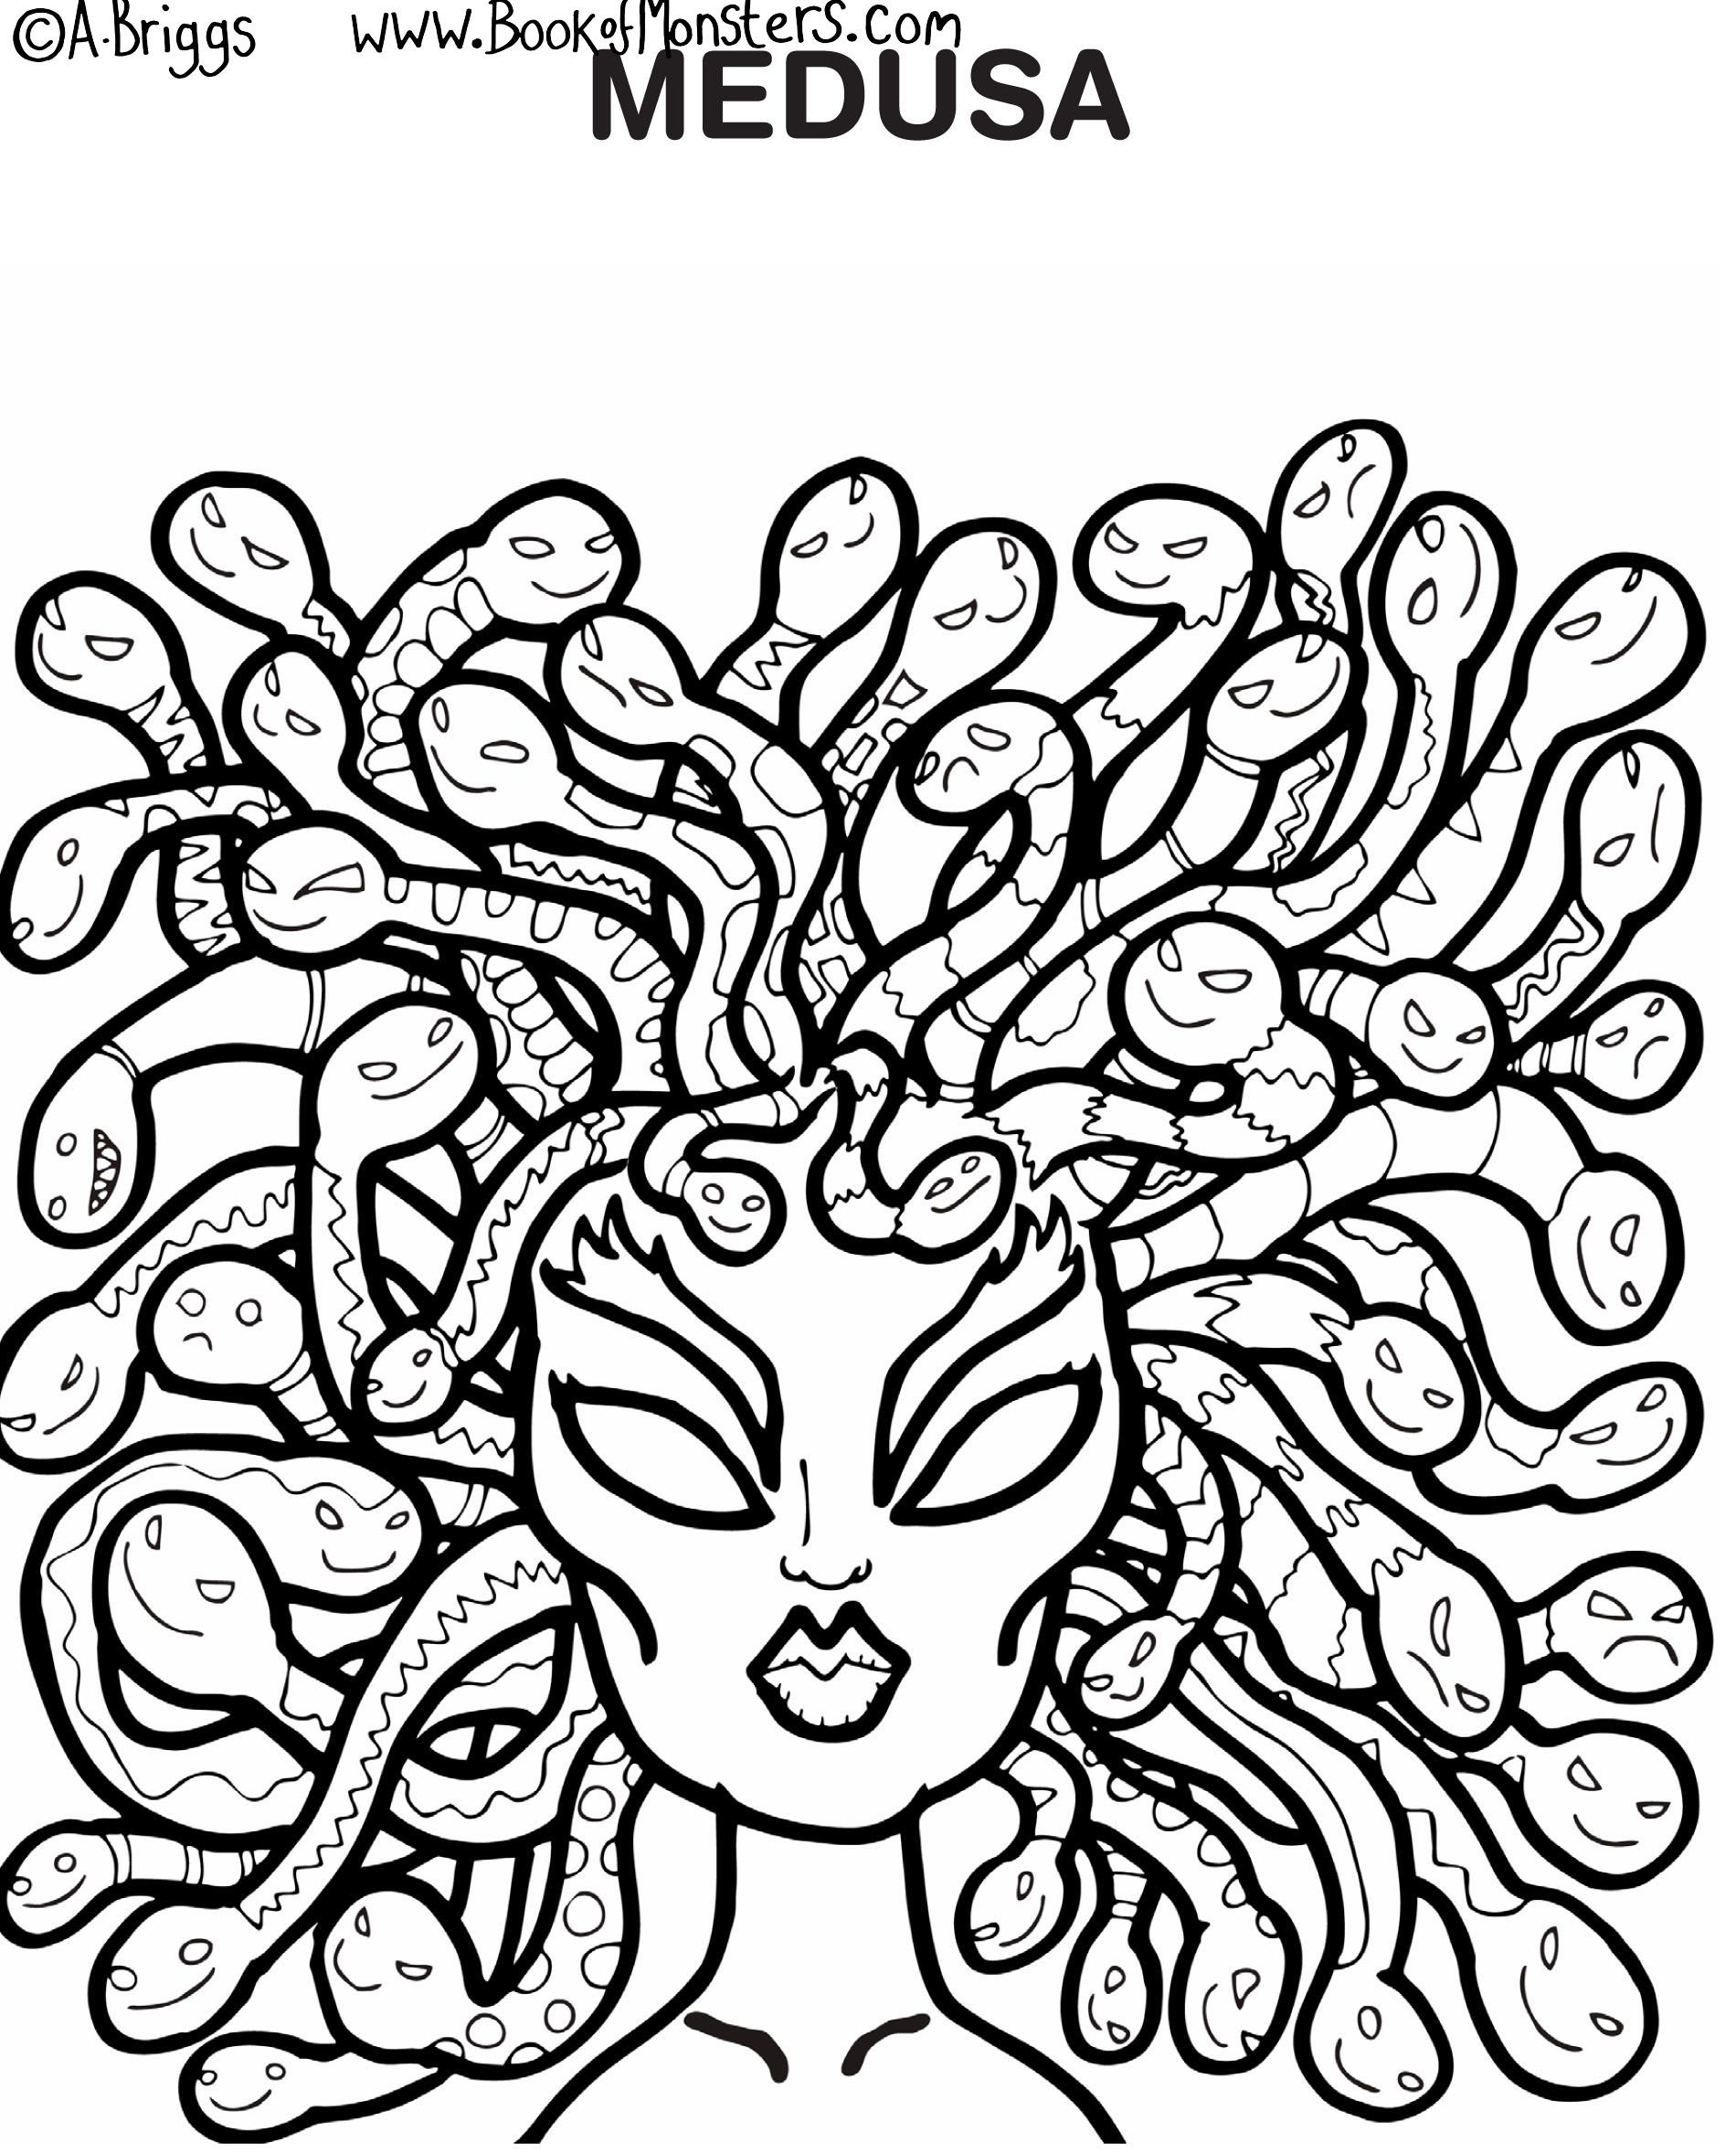 book of monsters coloring page for kids medusa greek mythology